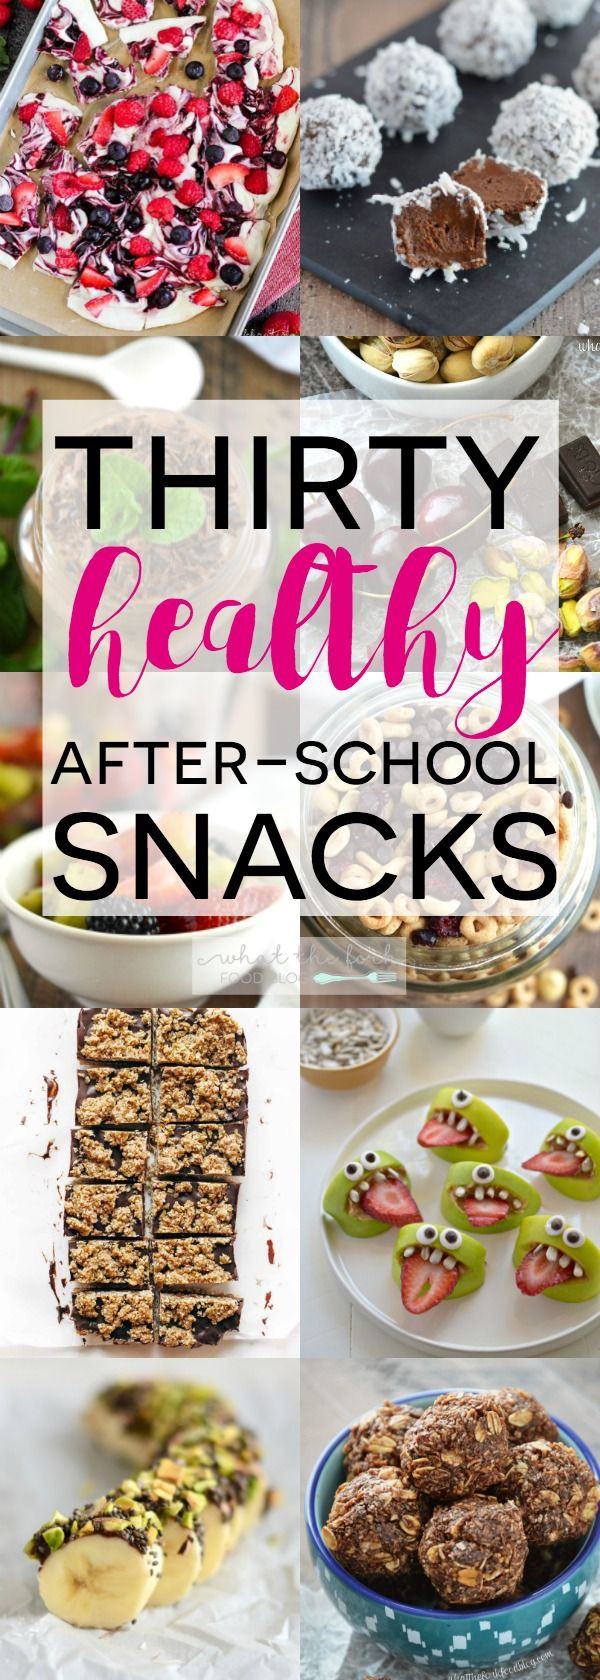 Healthy Afterschool Snacks For Weight Loss  30 Healthy After School Snacks